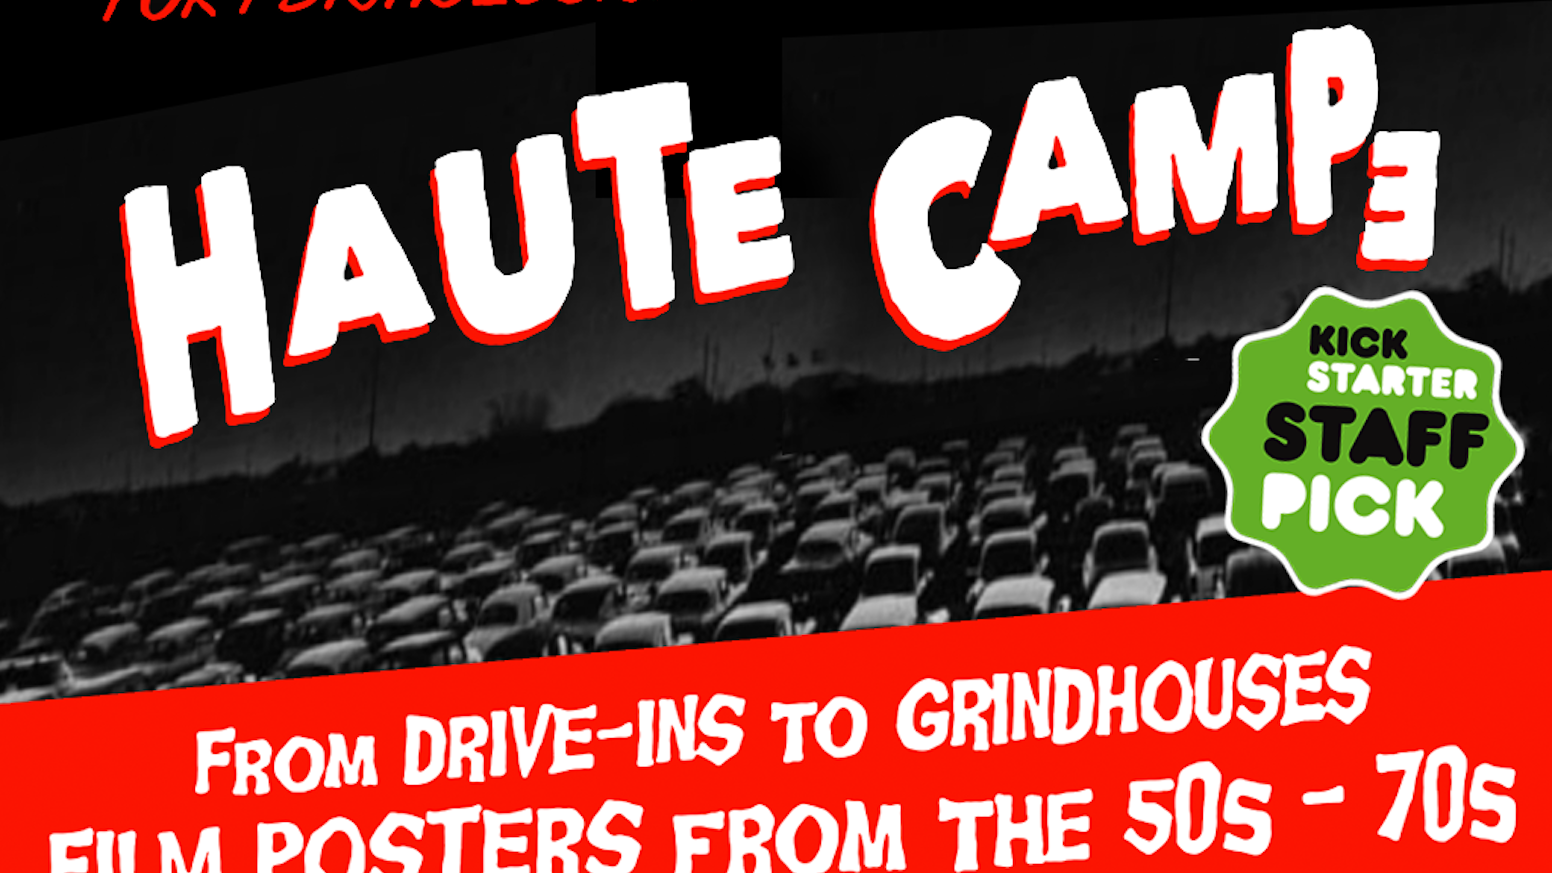 foto de Haute Campe: Drive in movie poster art from the 50s 70s by